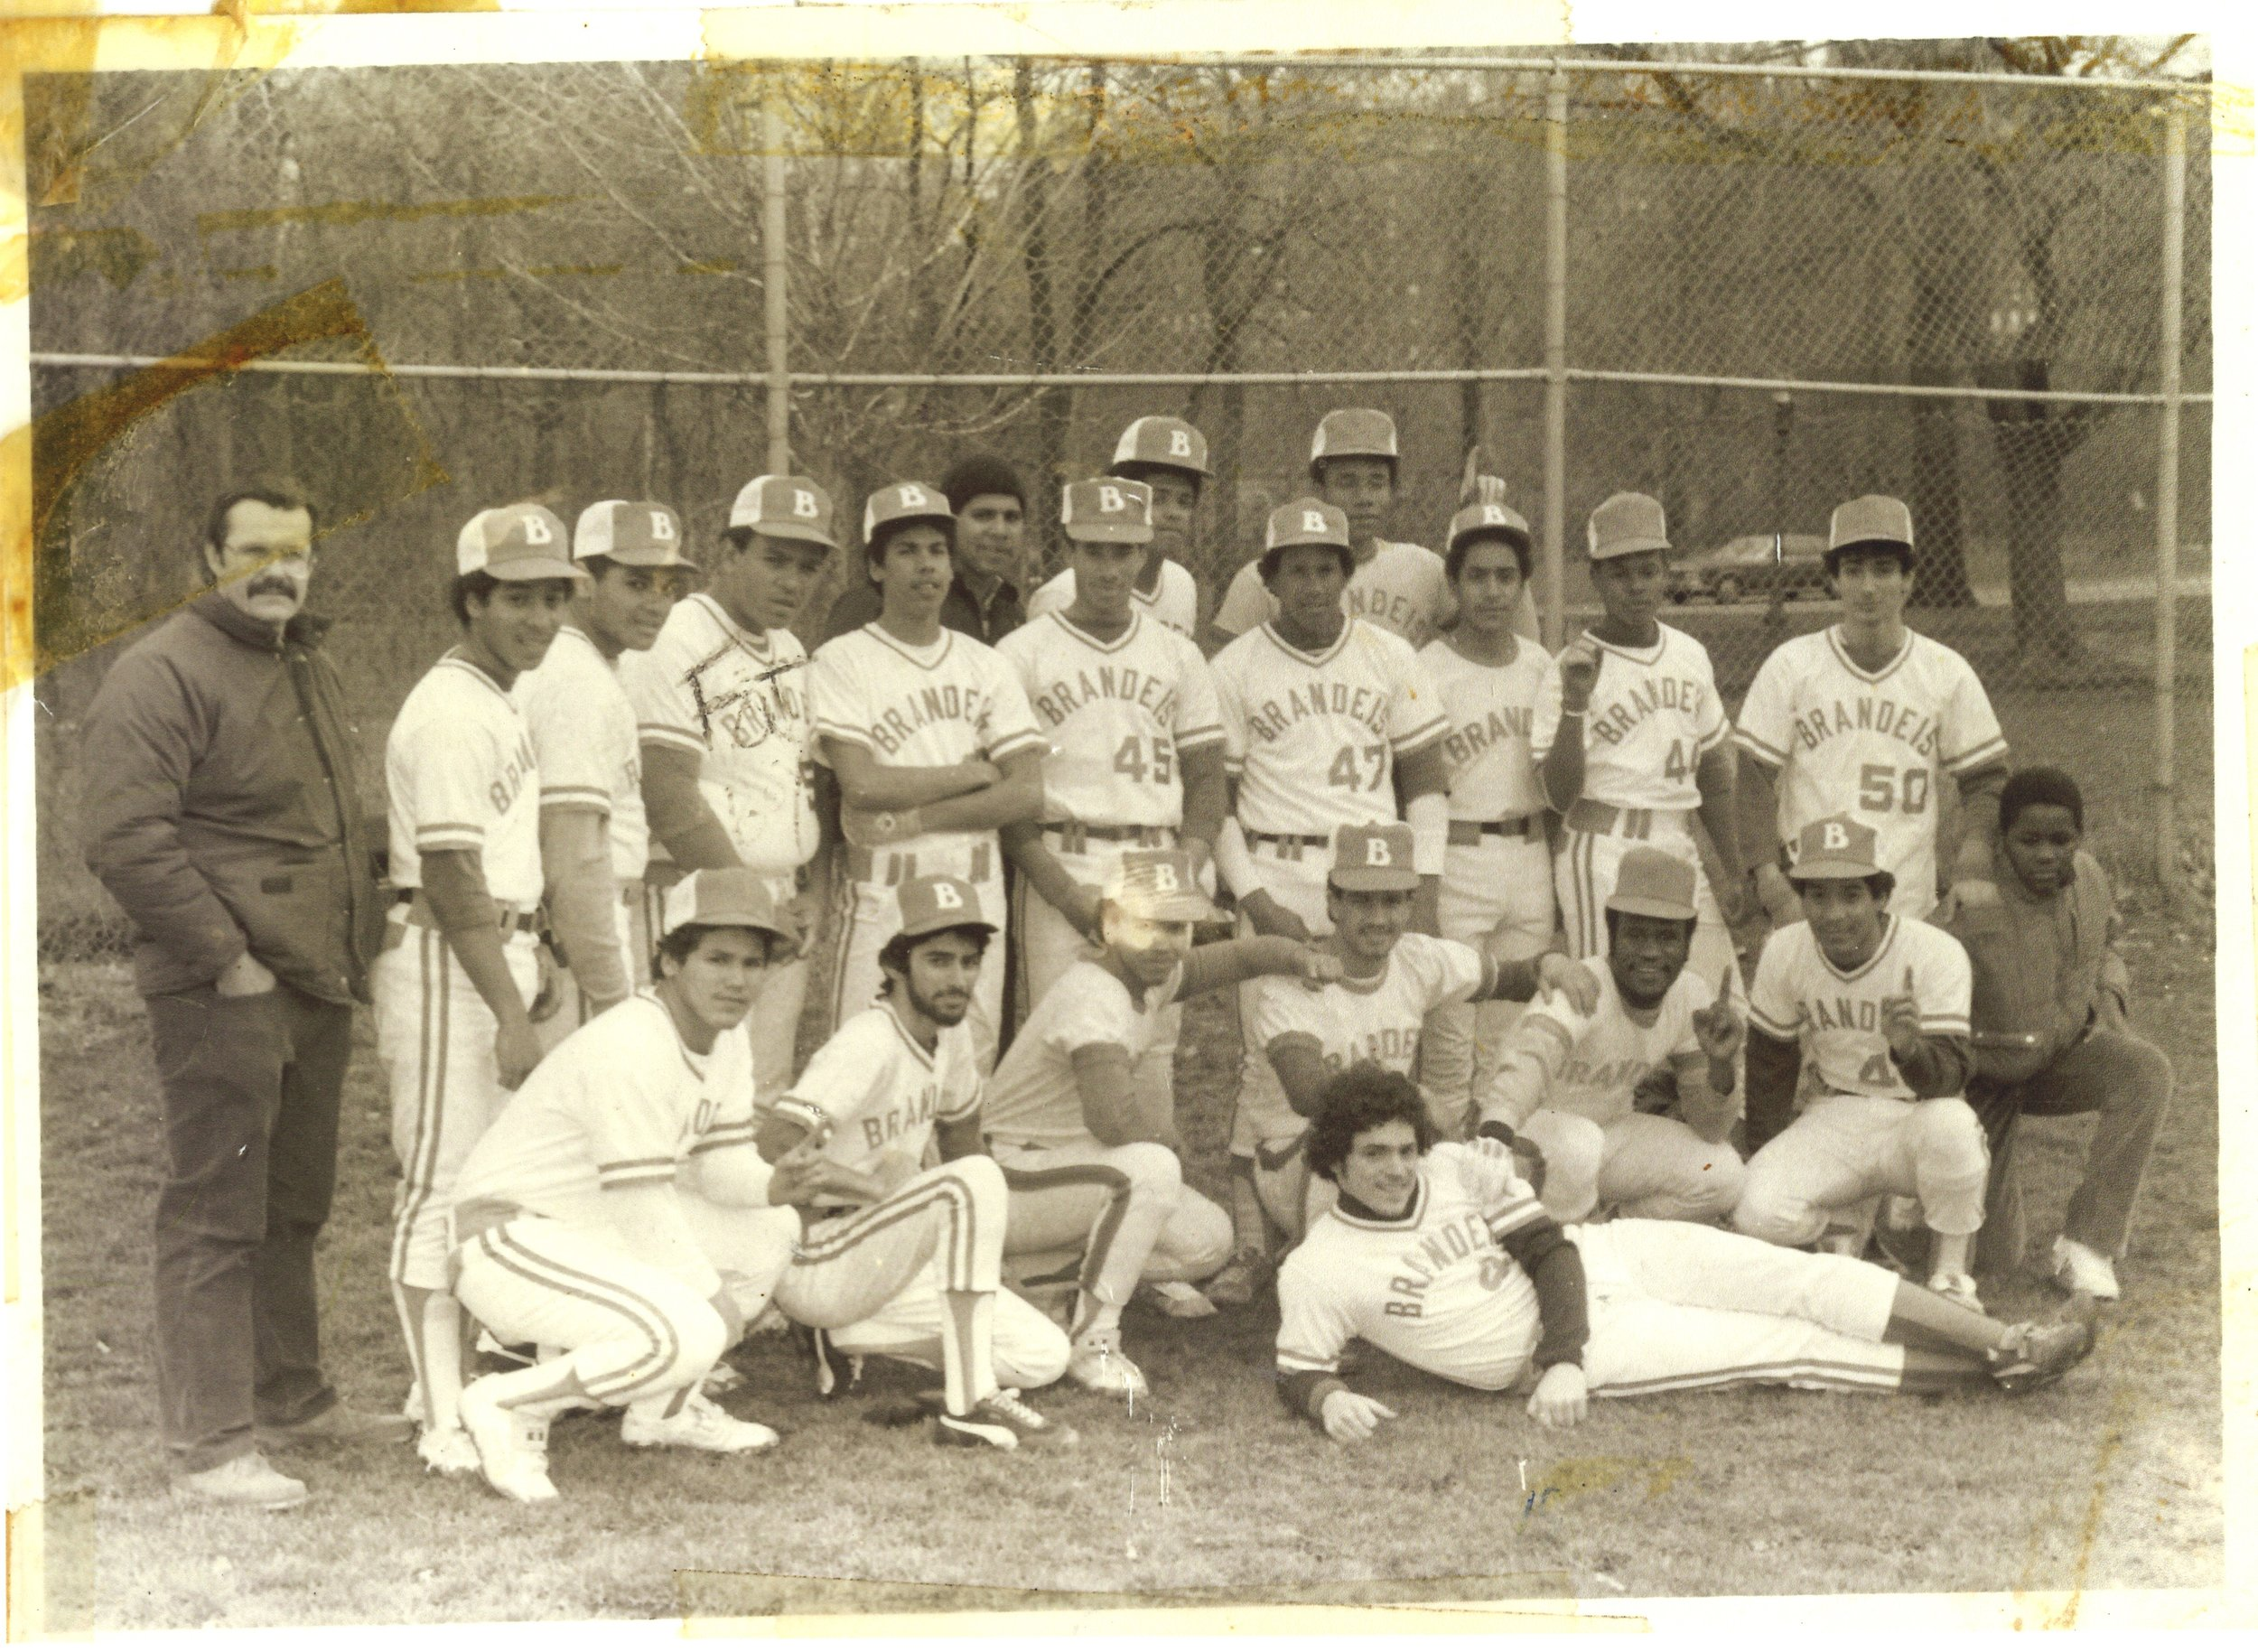 Brandeis High School's baseball team circa the mid-1980s when I acted as the squad's statistician. Can you spot me? (Mayor Michael Bloomberg would shutter the school in 2014 as part of his policy to improve public education.)